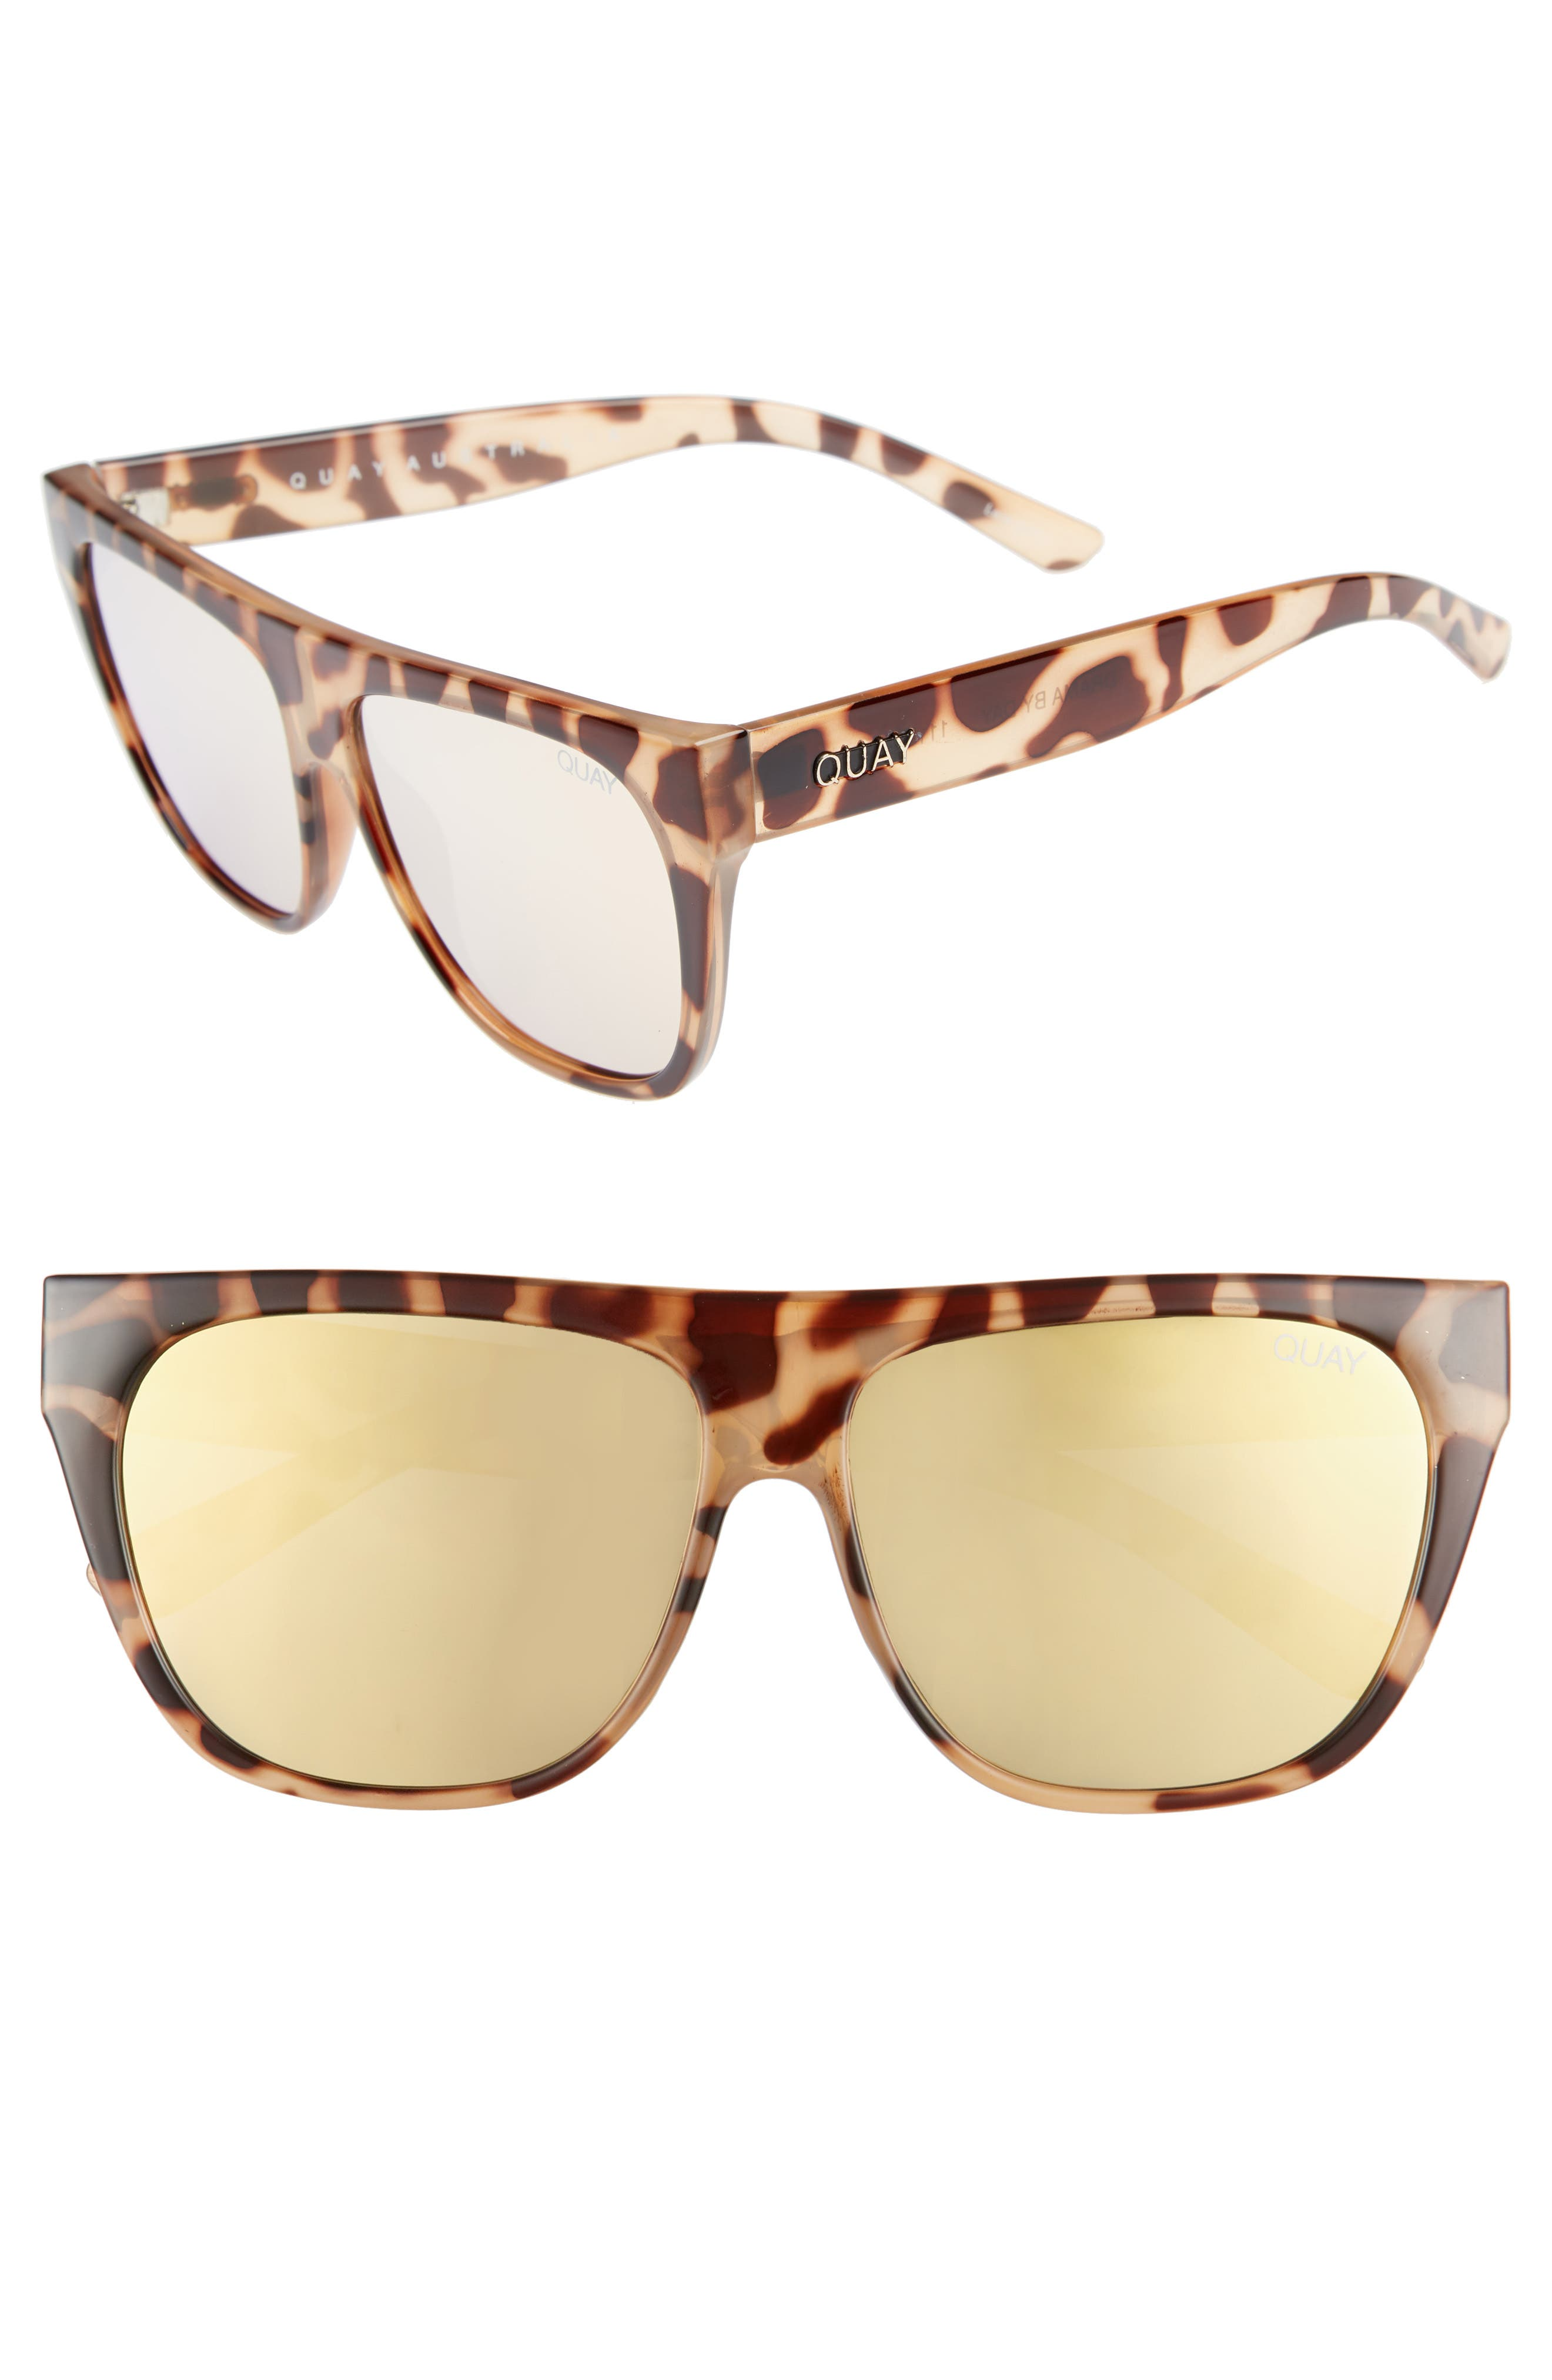 x Tony Bianco Drama by Day 55mm Square Sunglasses,                         Main,                         color, Tort/ Gold